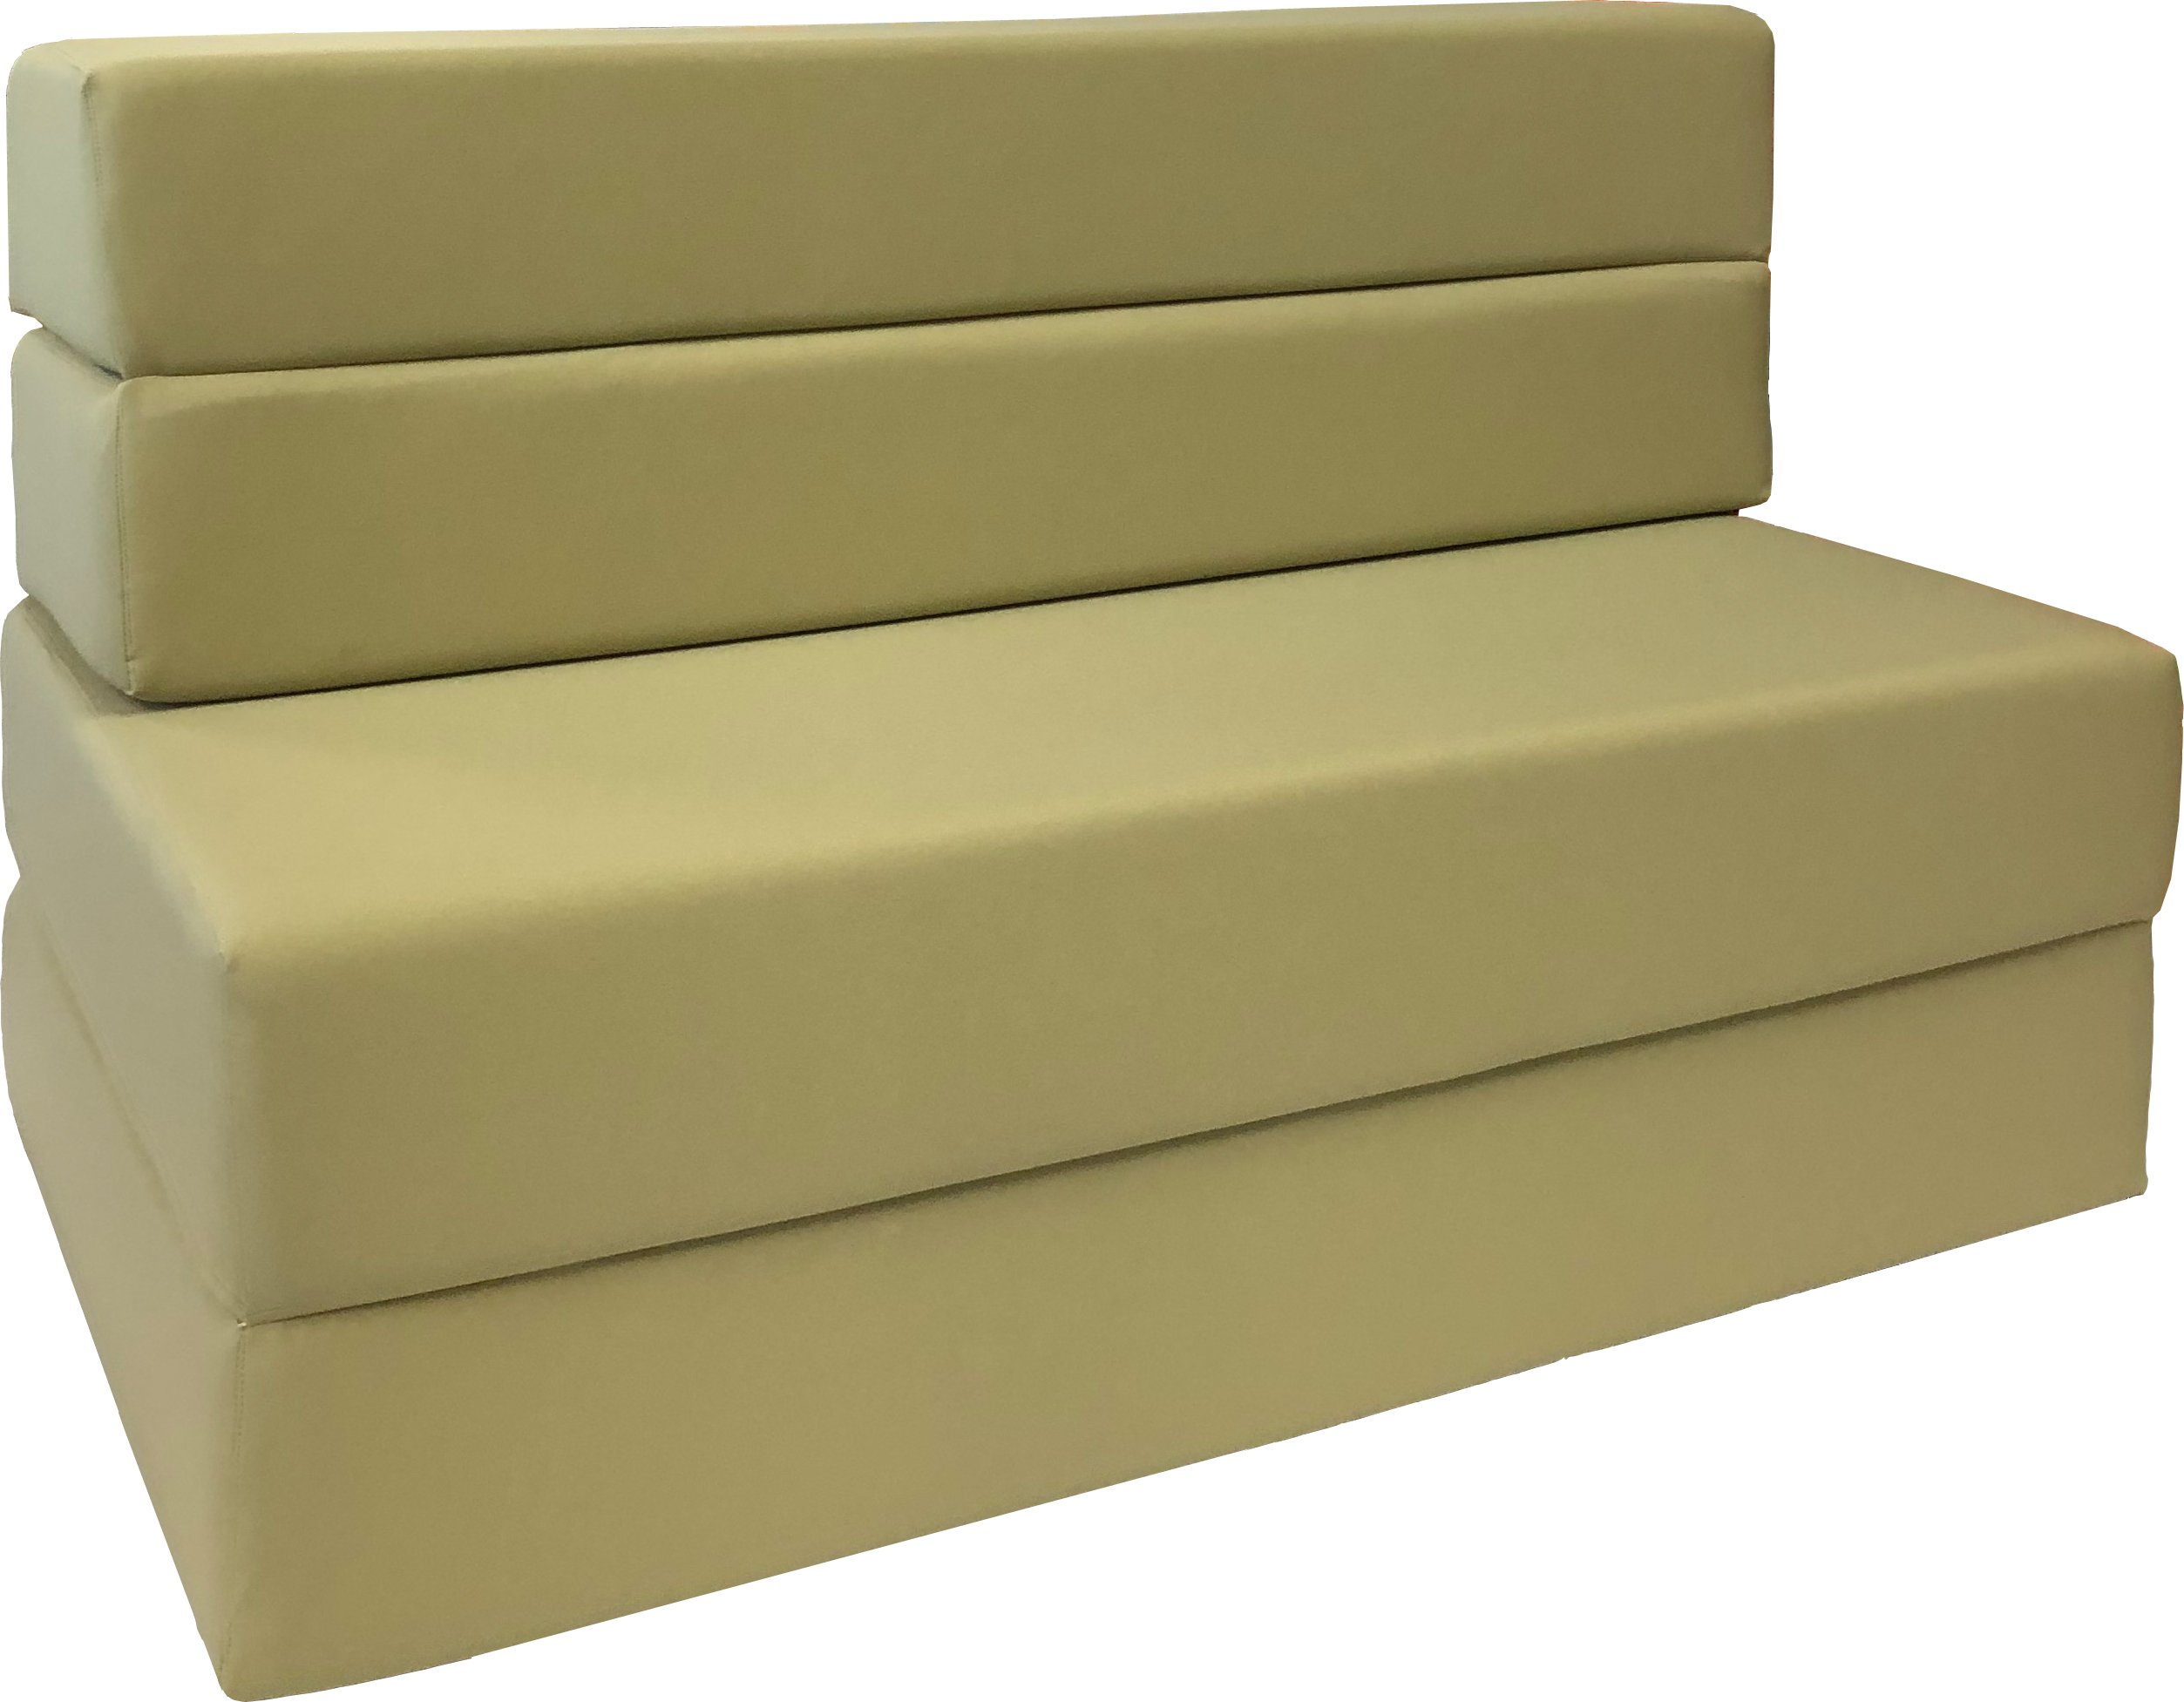 D&D Futon Furniture Folding Foam Mattress, Sofa Chair Bed, Guest Beds (Twin Size, Tan) by D&D Futon Furniture